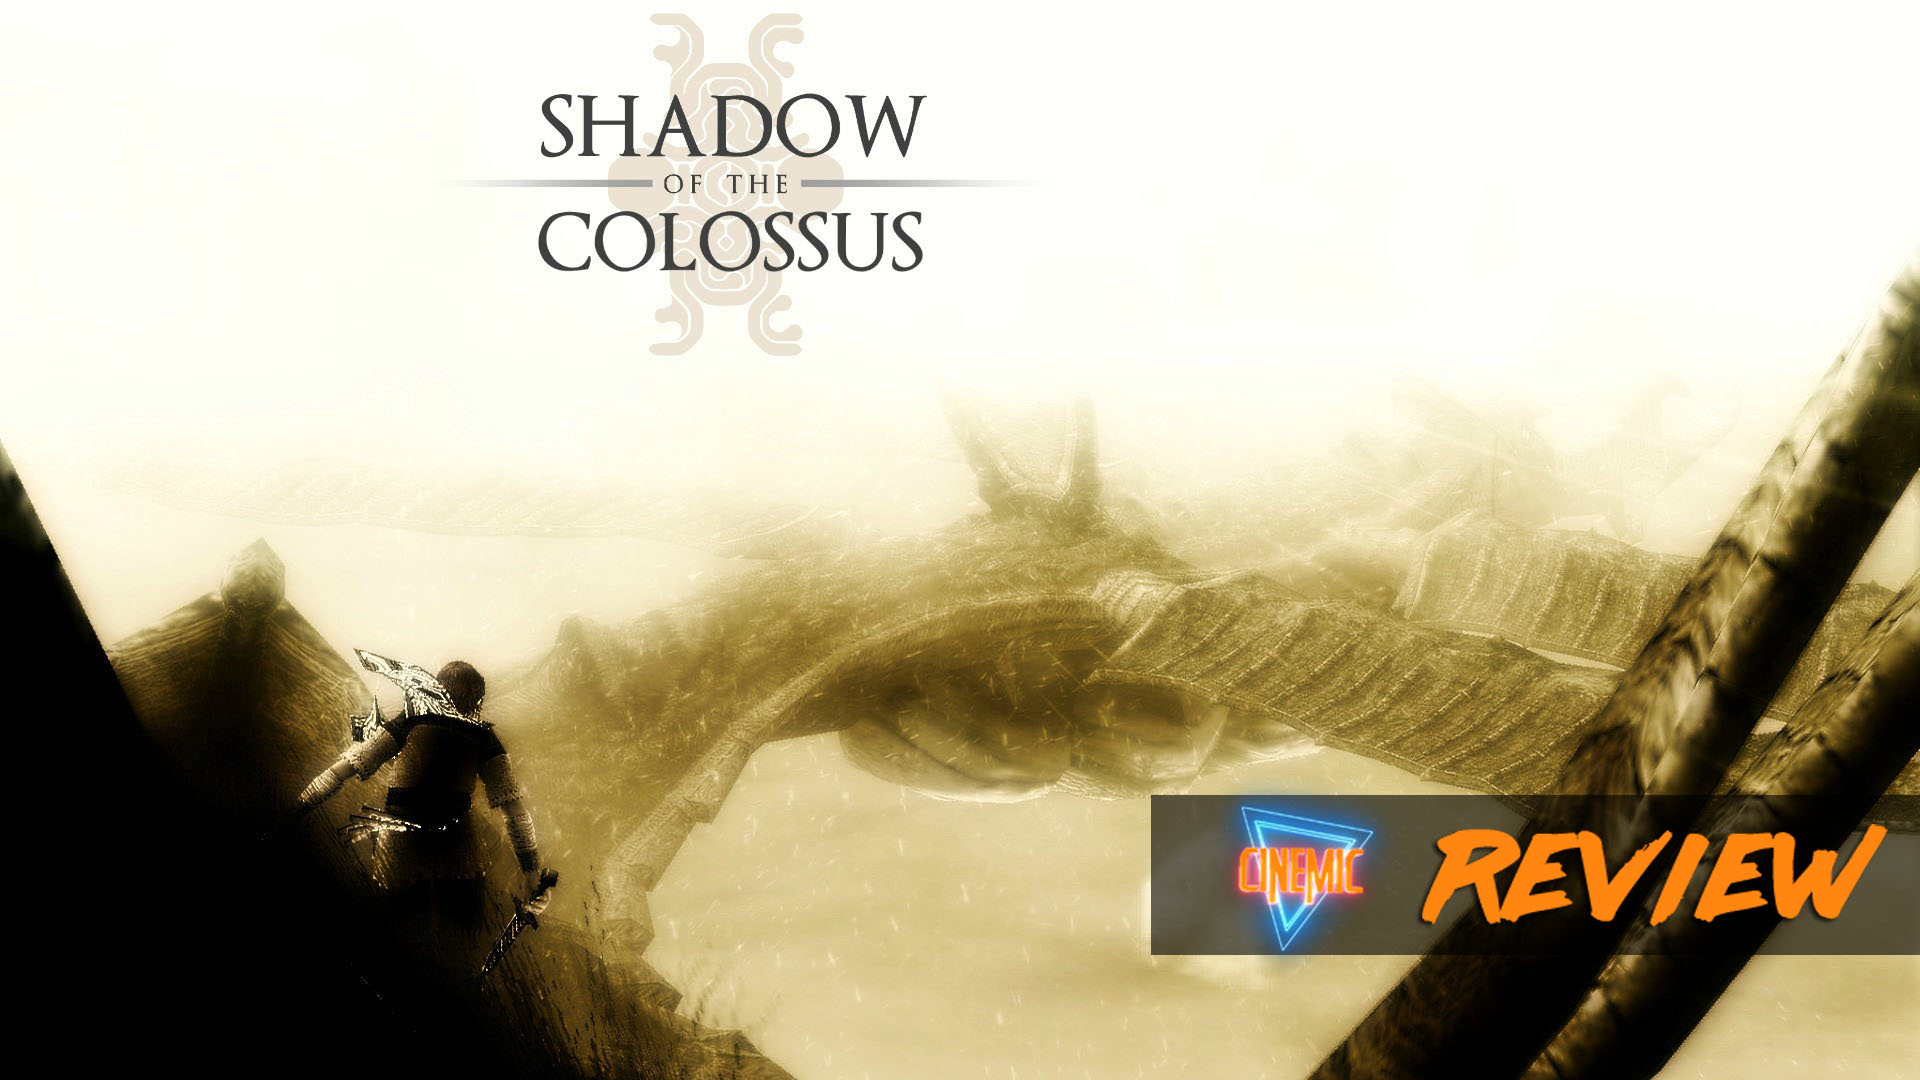 A review de Shadow of The Colossus para a playstation 4 Cinemic